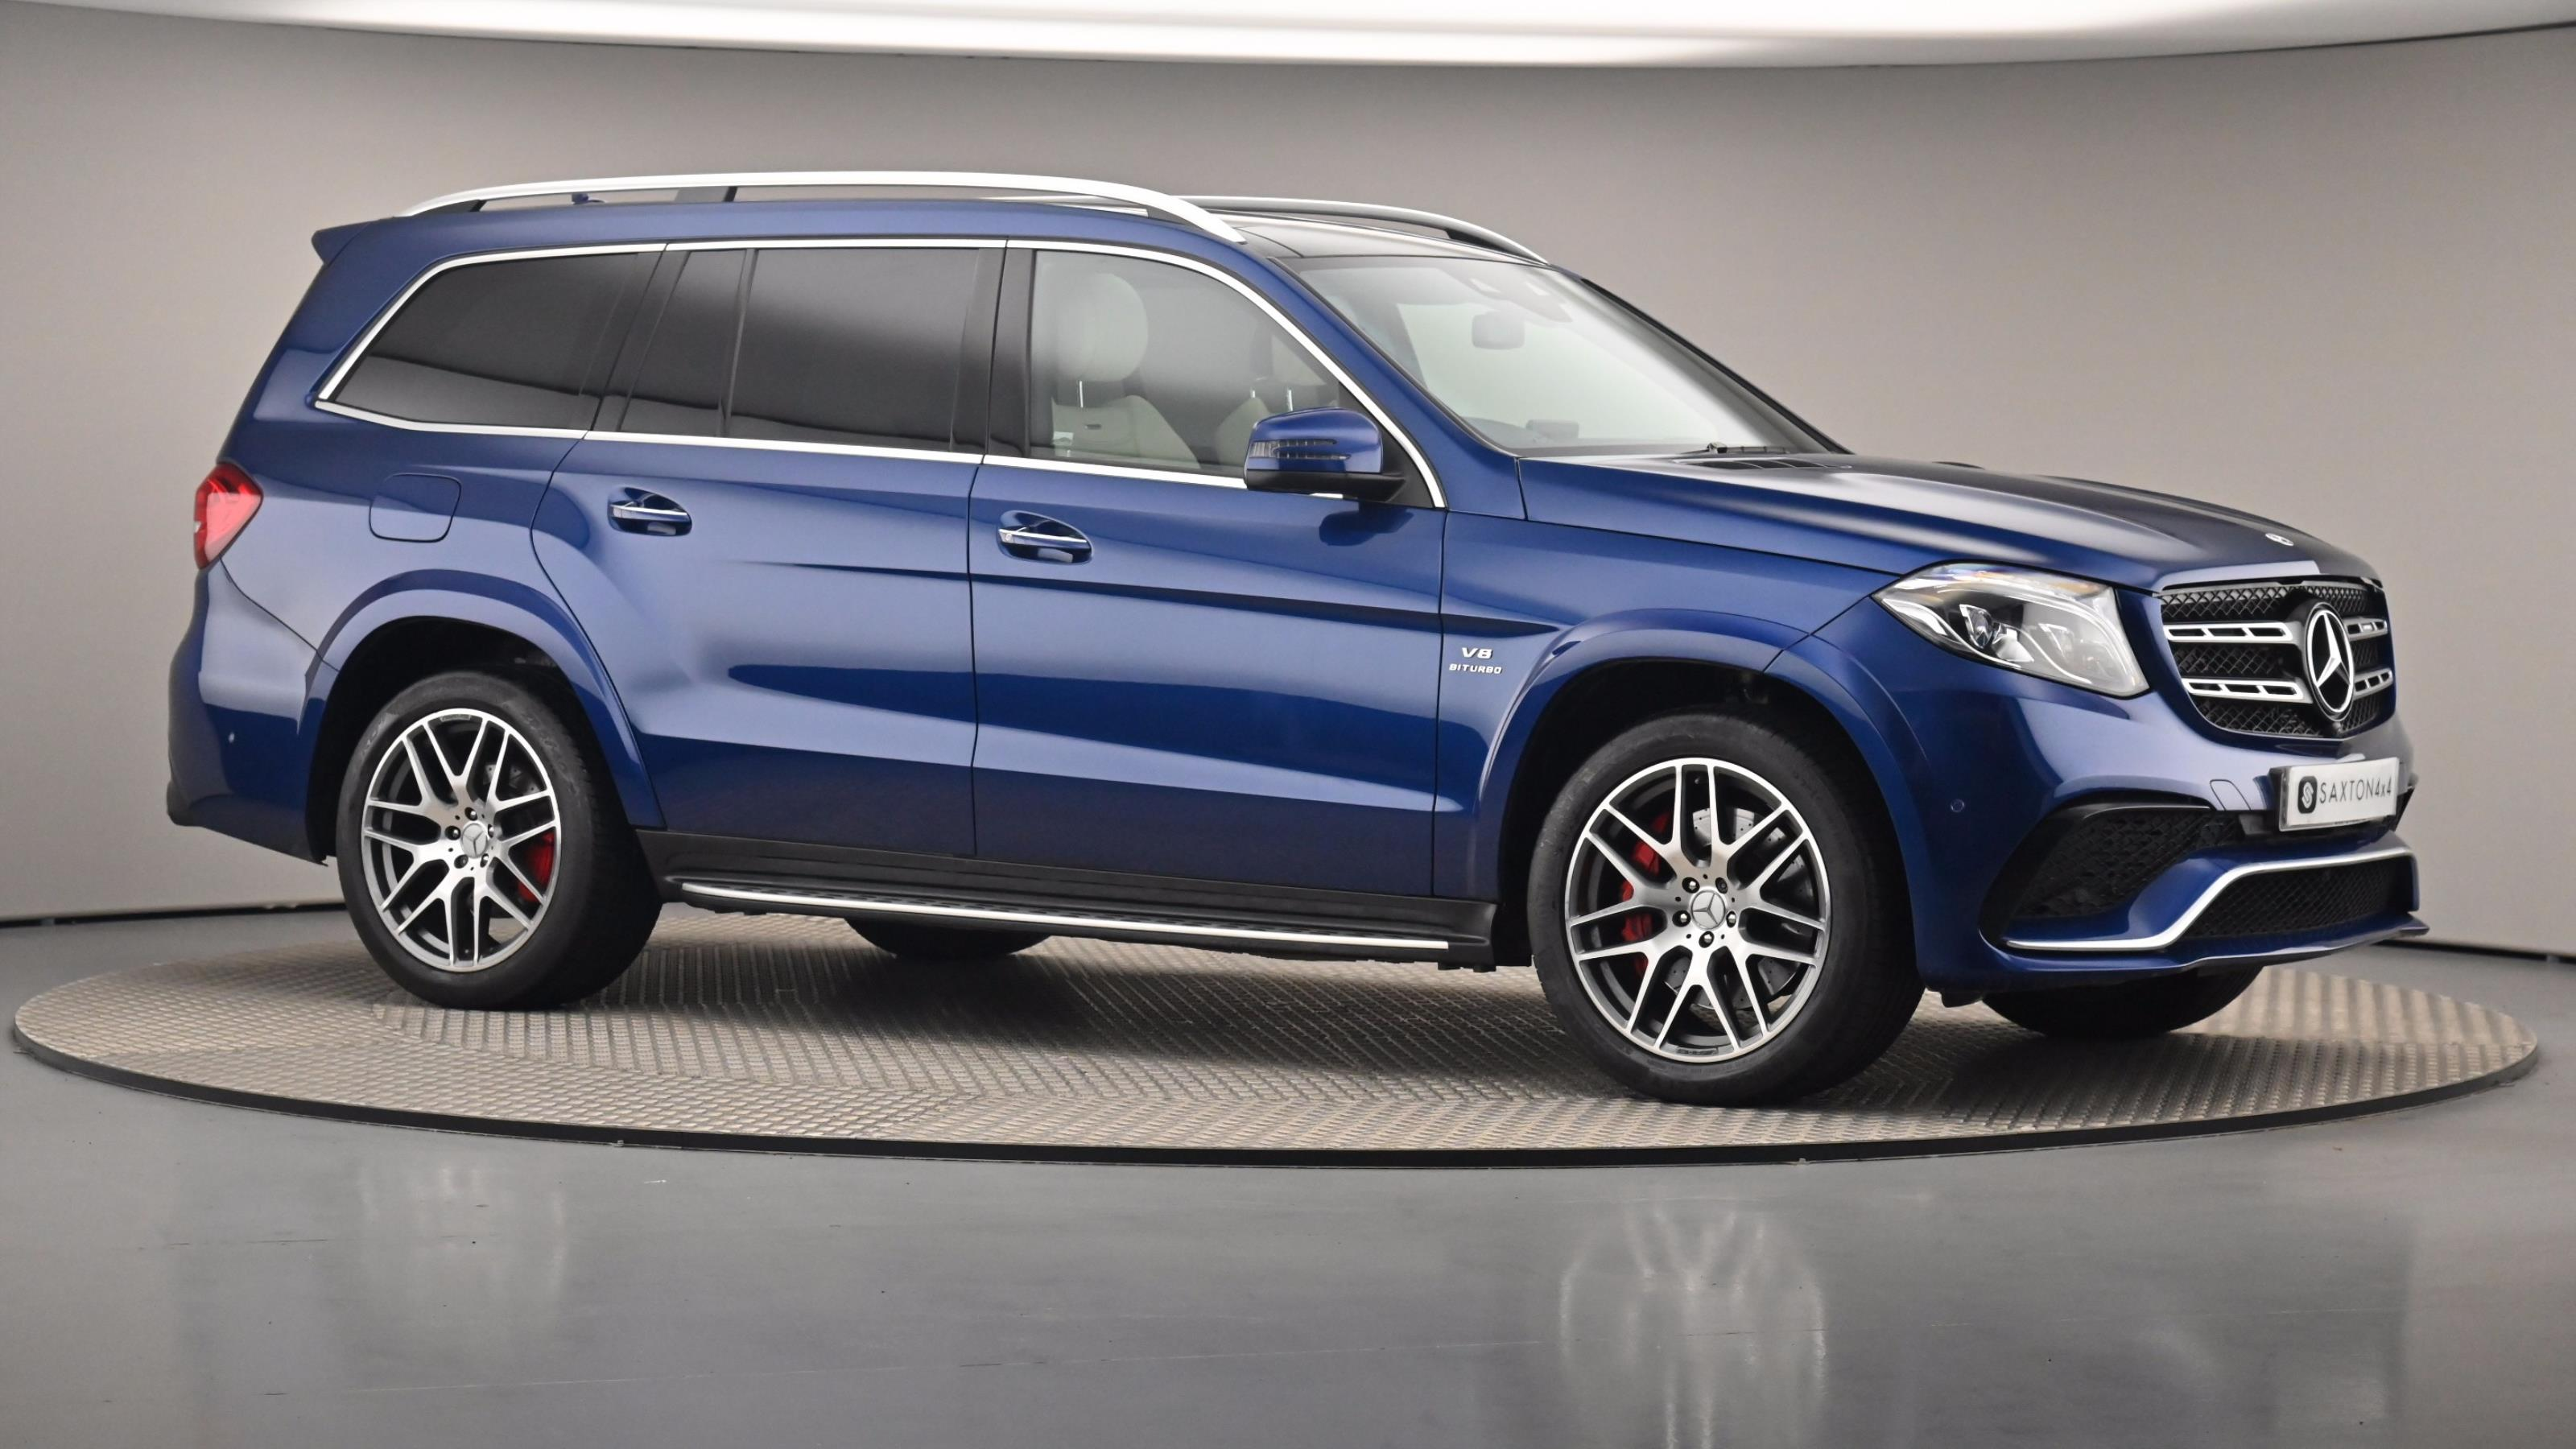 Used 2017 Mercedes-Benz GLS AMG GLS 63 4Matic 5dr 7G-Tronic Blue at Saxton4x4